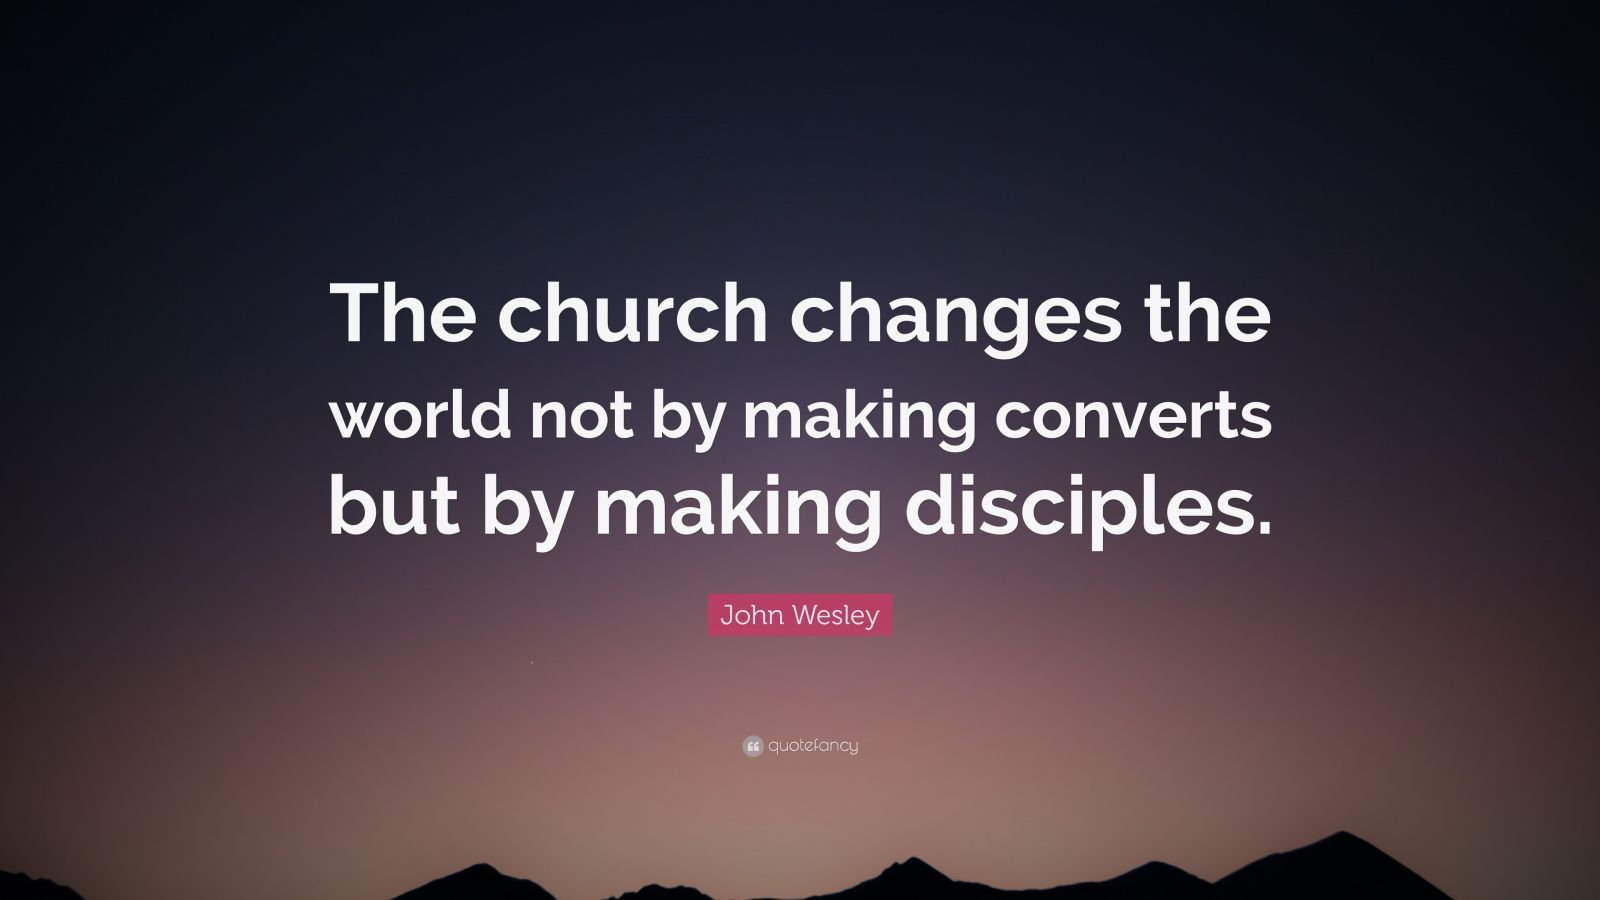 """John Wesley Quotes John Wesley Quote: """"The church changes the world not by making  John Wesley Quotes"""